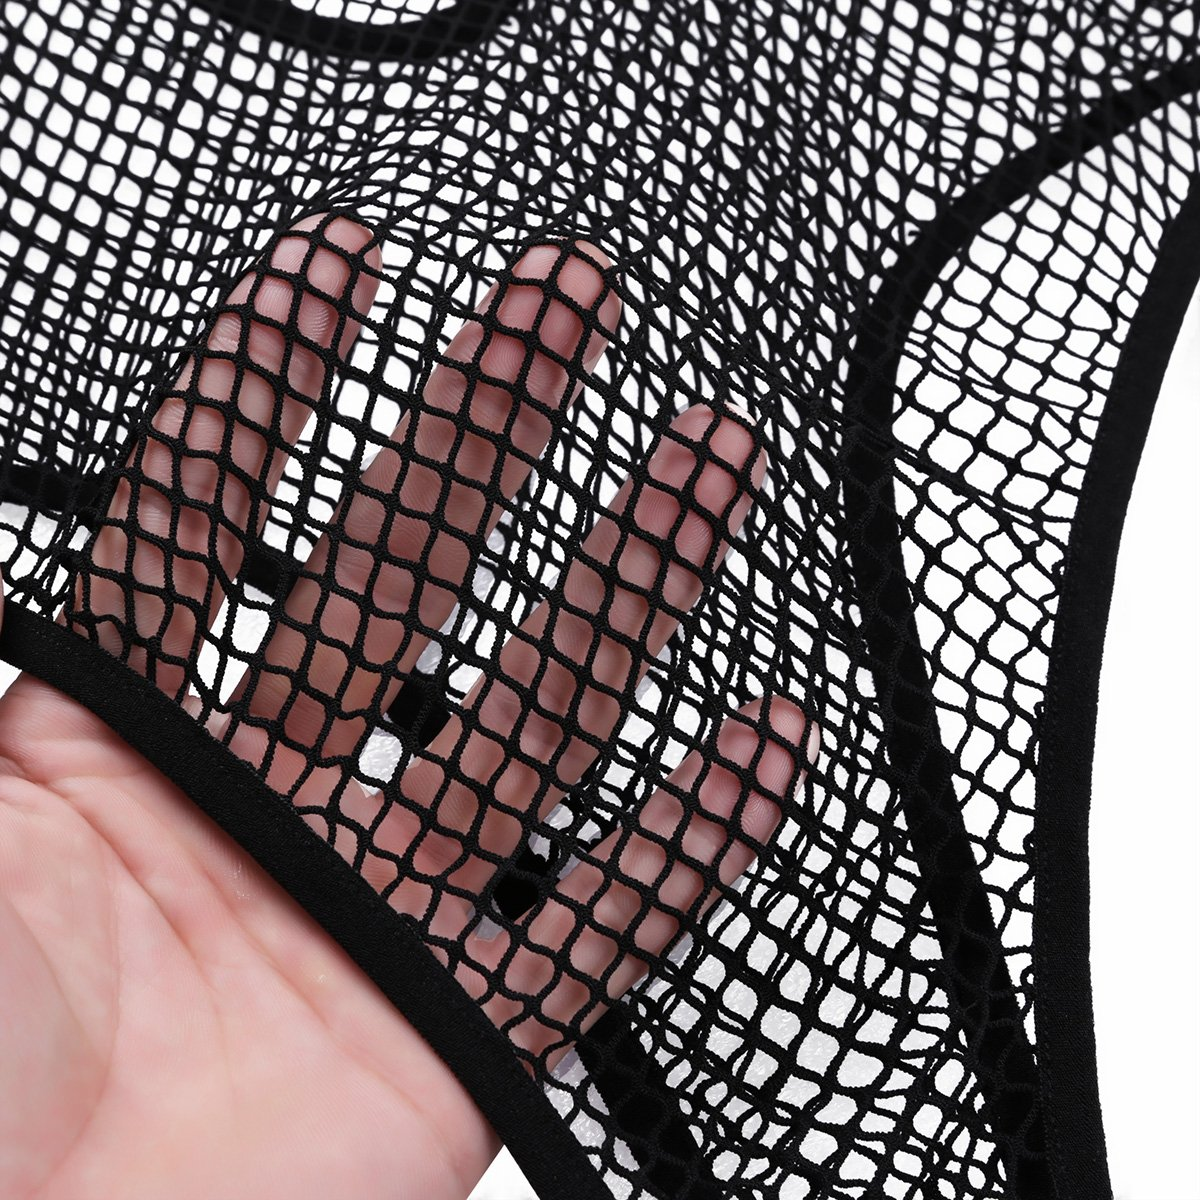 75546b6c66b Amazon.com  iiniim Sexy Women s Fishnet G-String See Through Bodysuit Teddy  Lingerie  Clothing